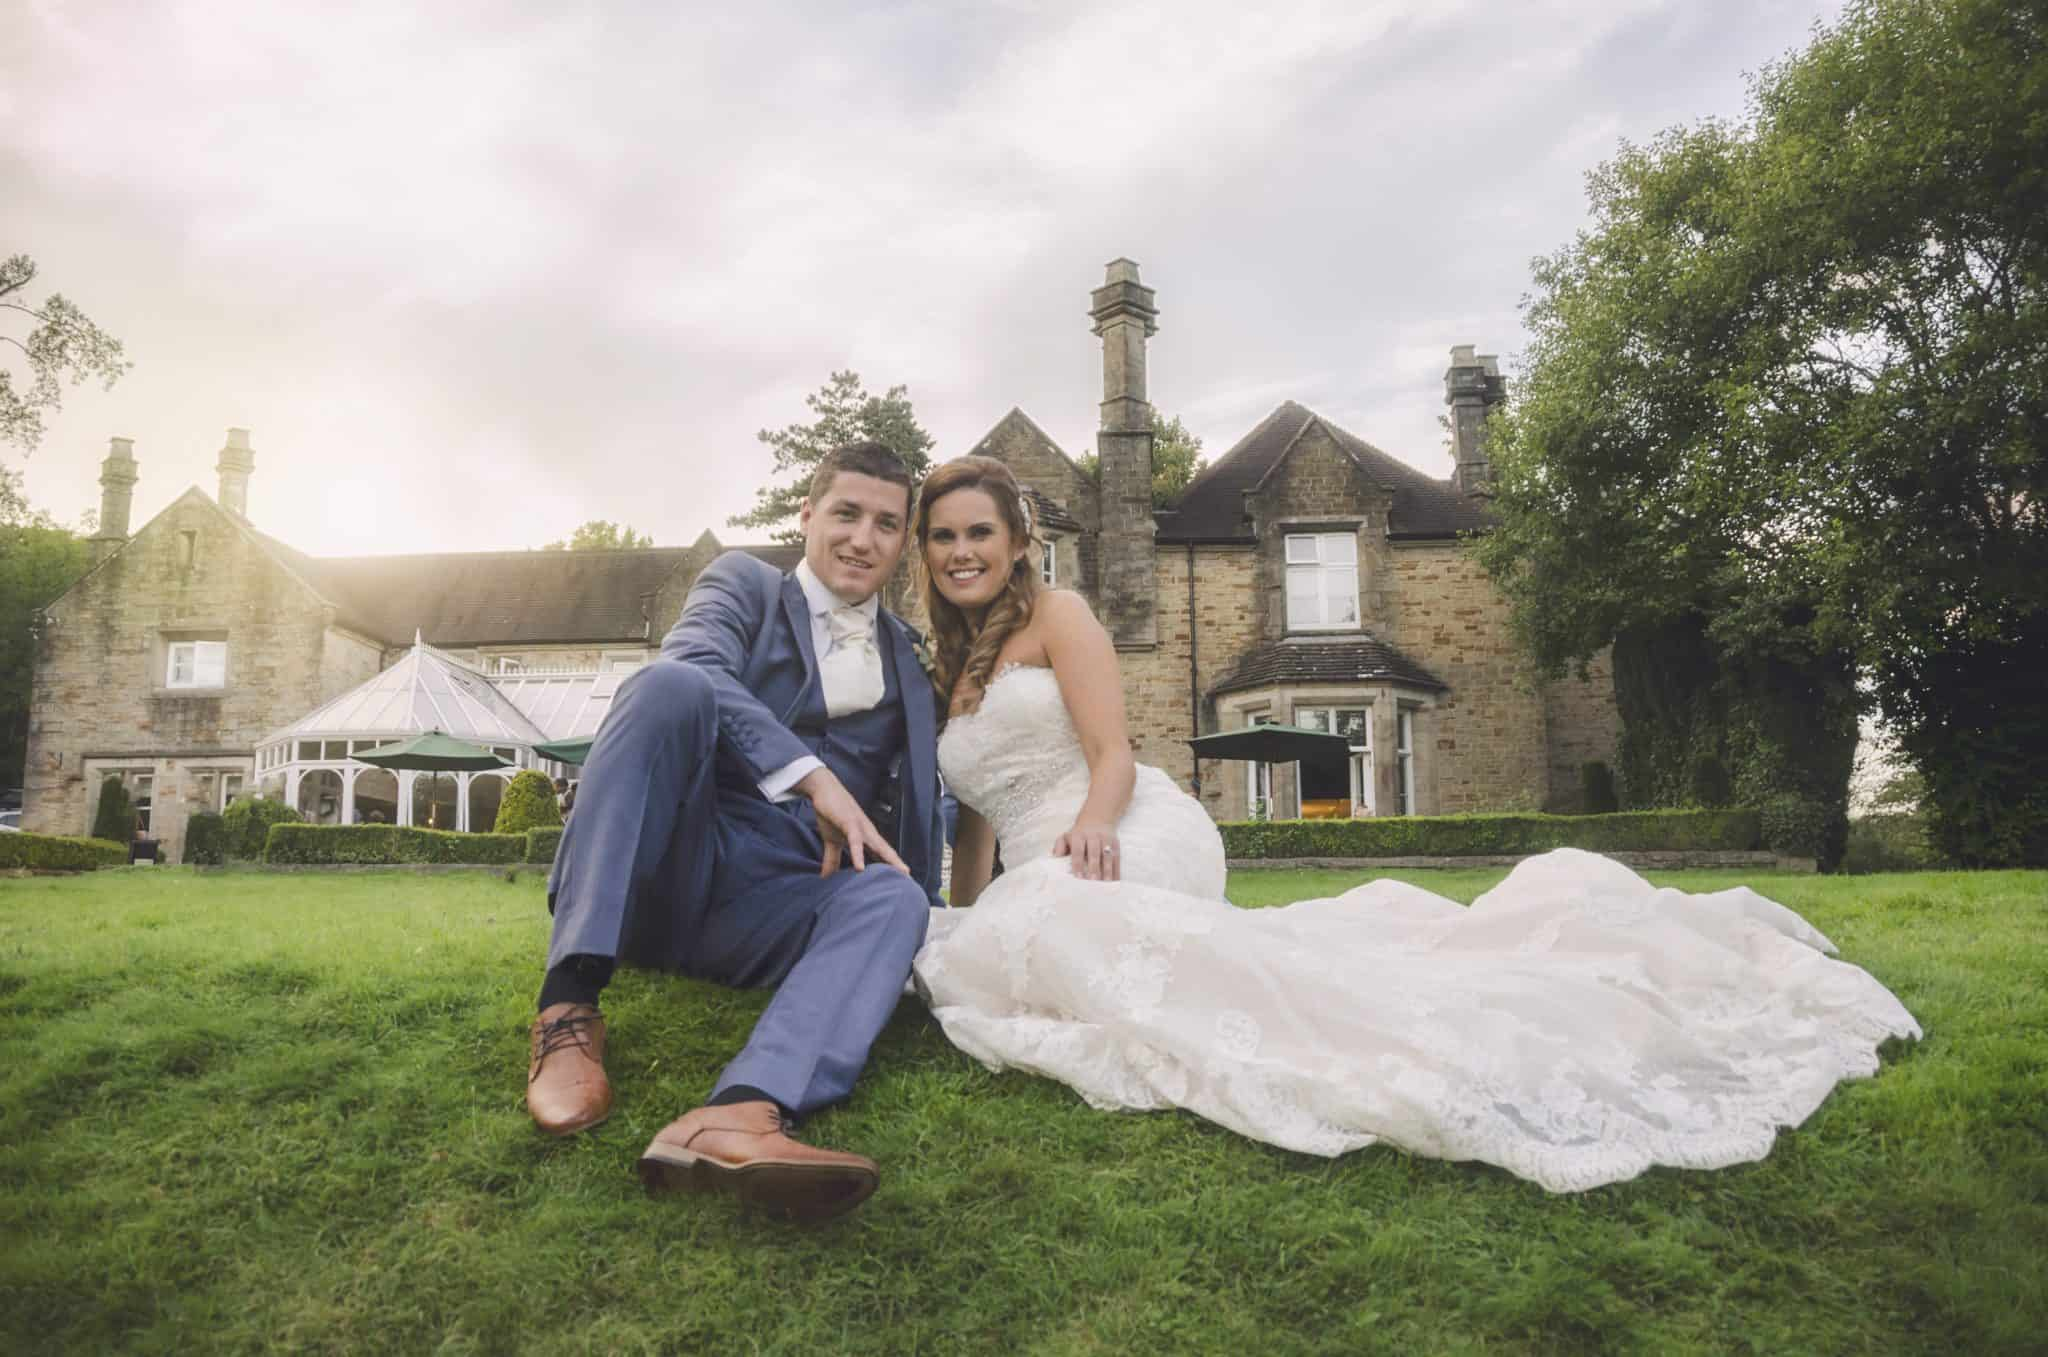 Bride and groom sat on grass bank in front of Bryngarw country house